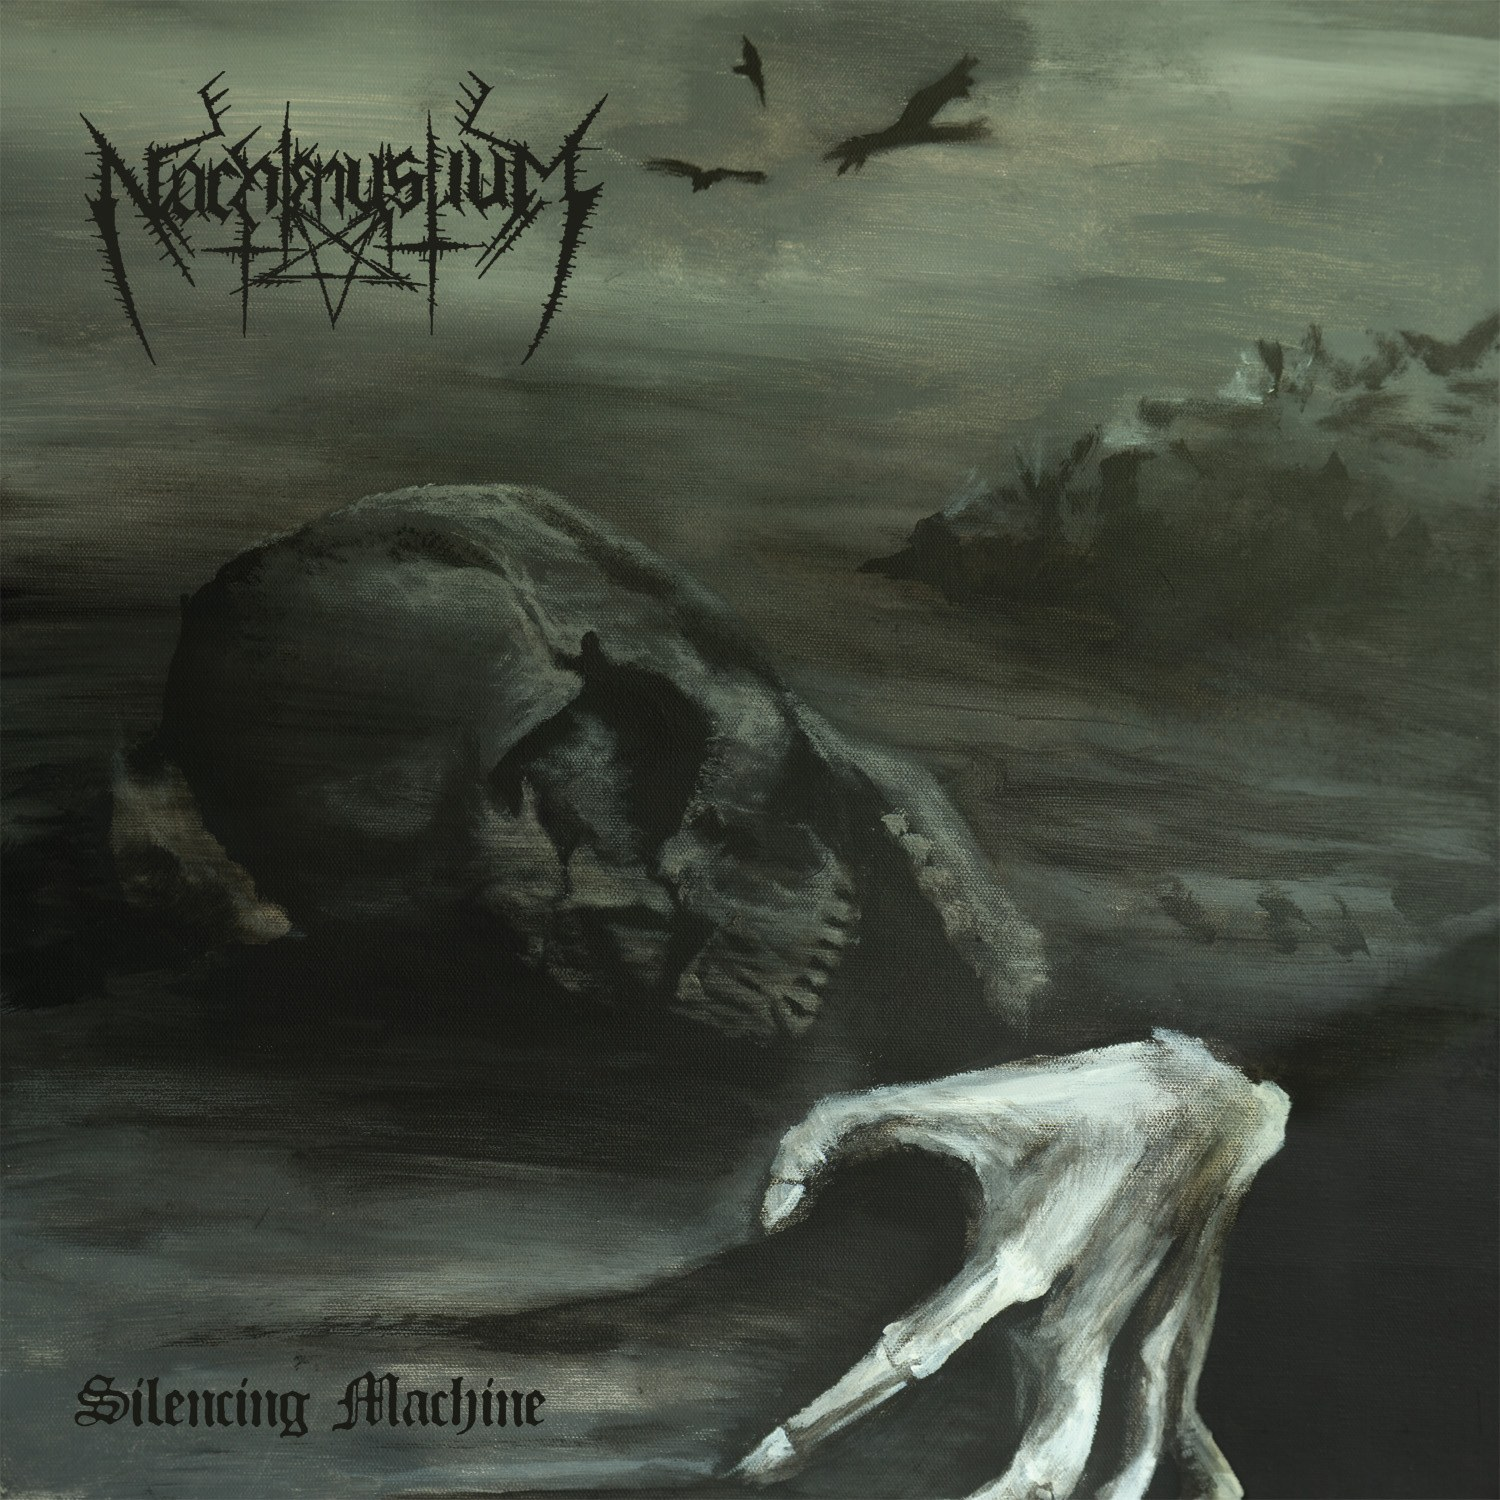 Review for Nachtmystium - Silencing Machine